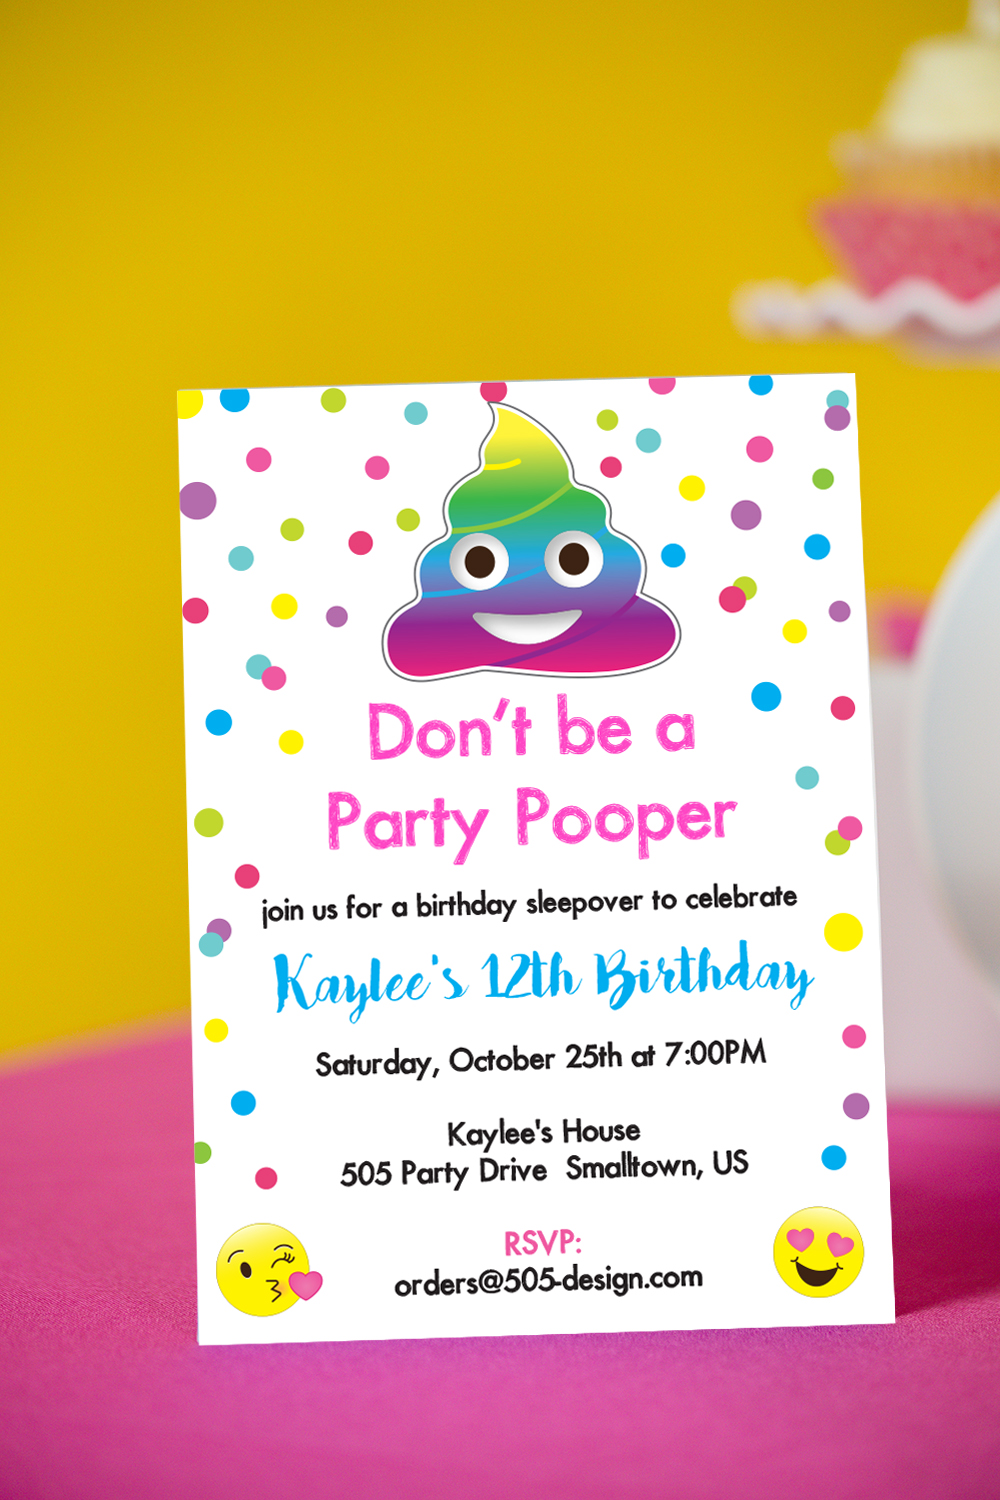 Party Pooper Invitation with Rainbow Poop Emoji